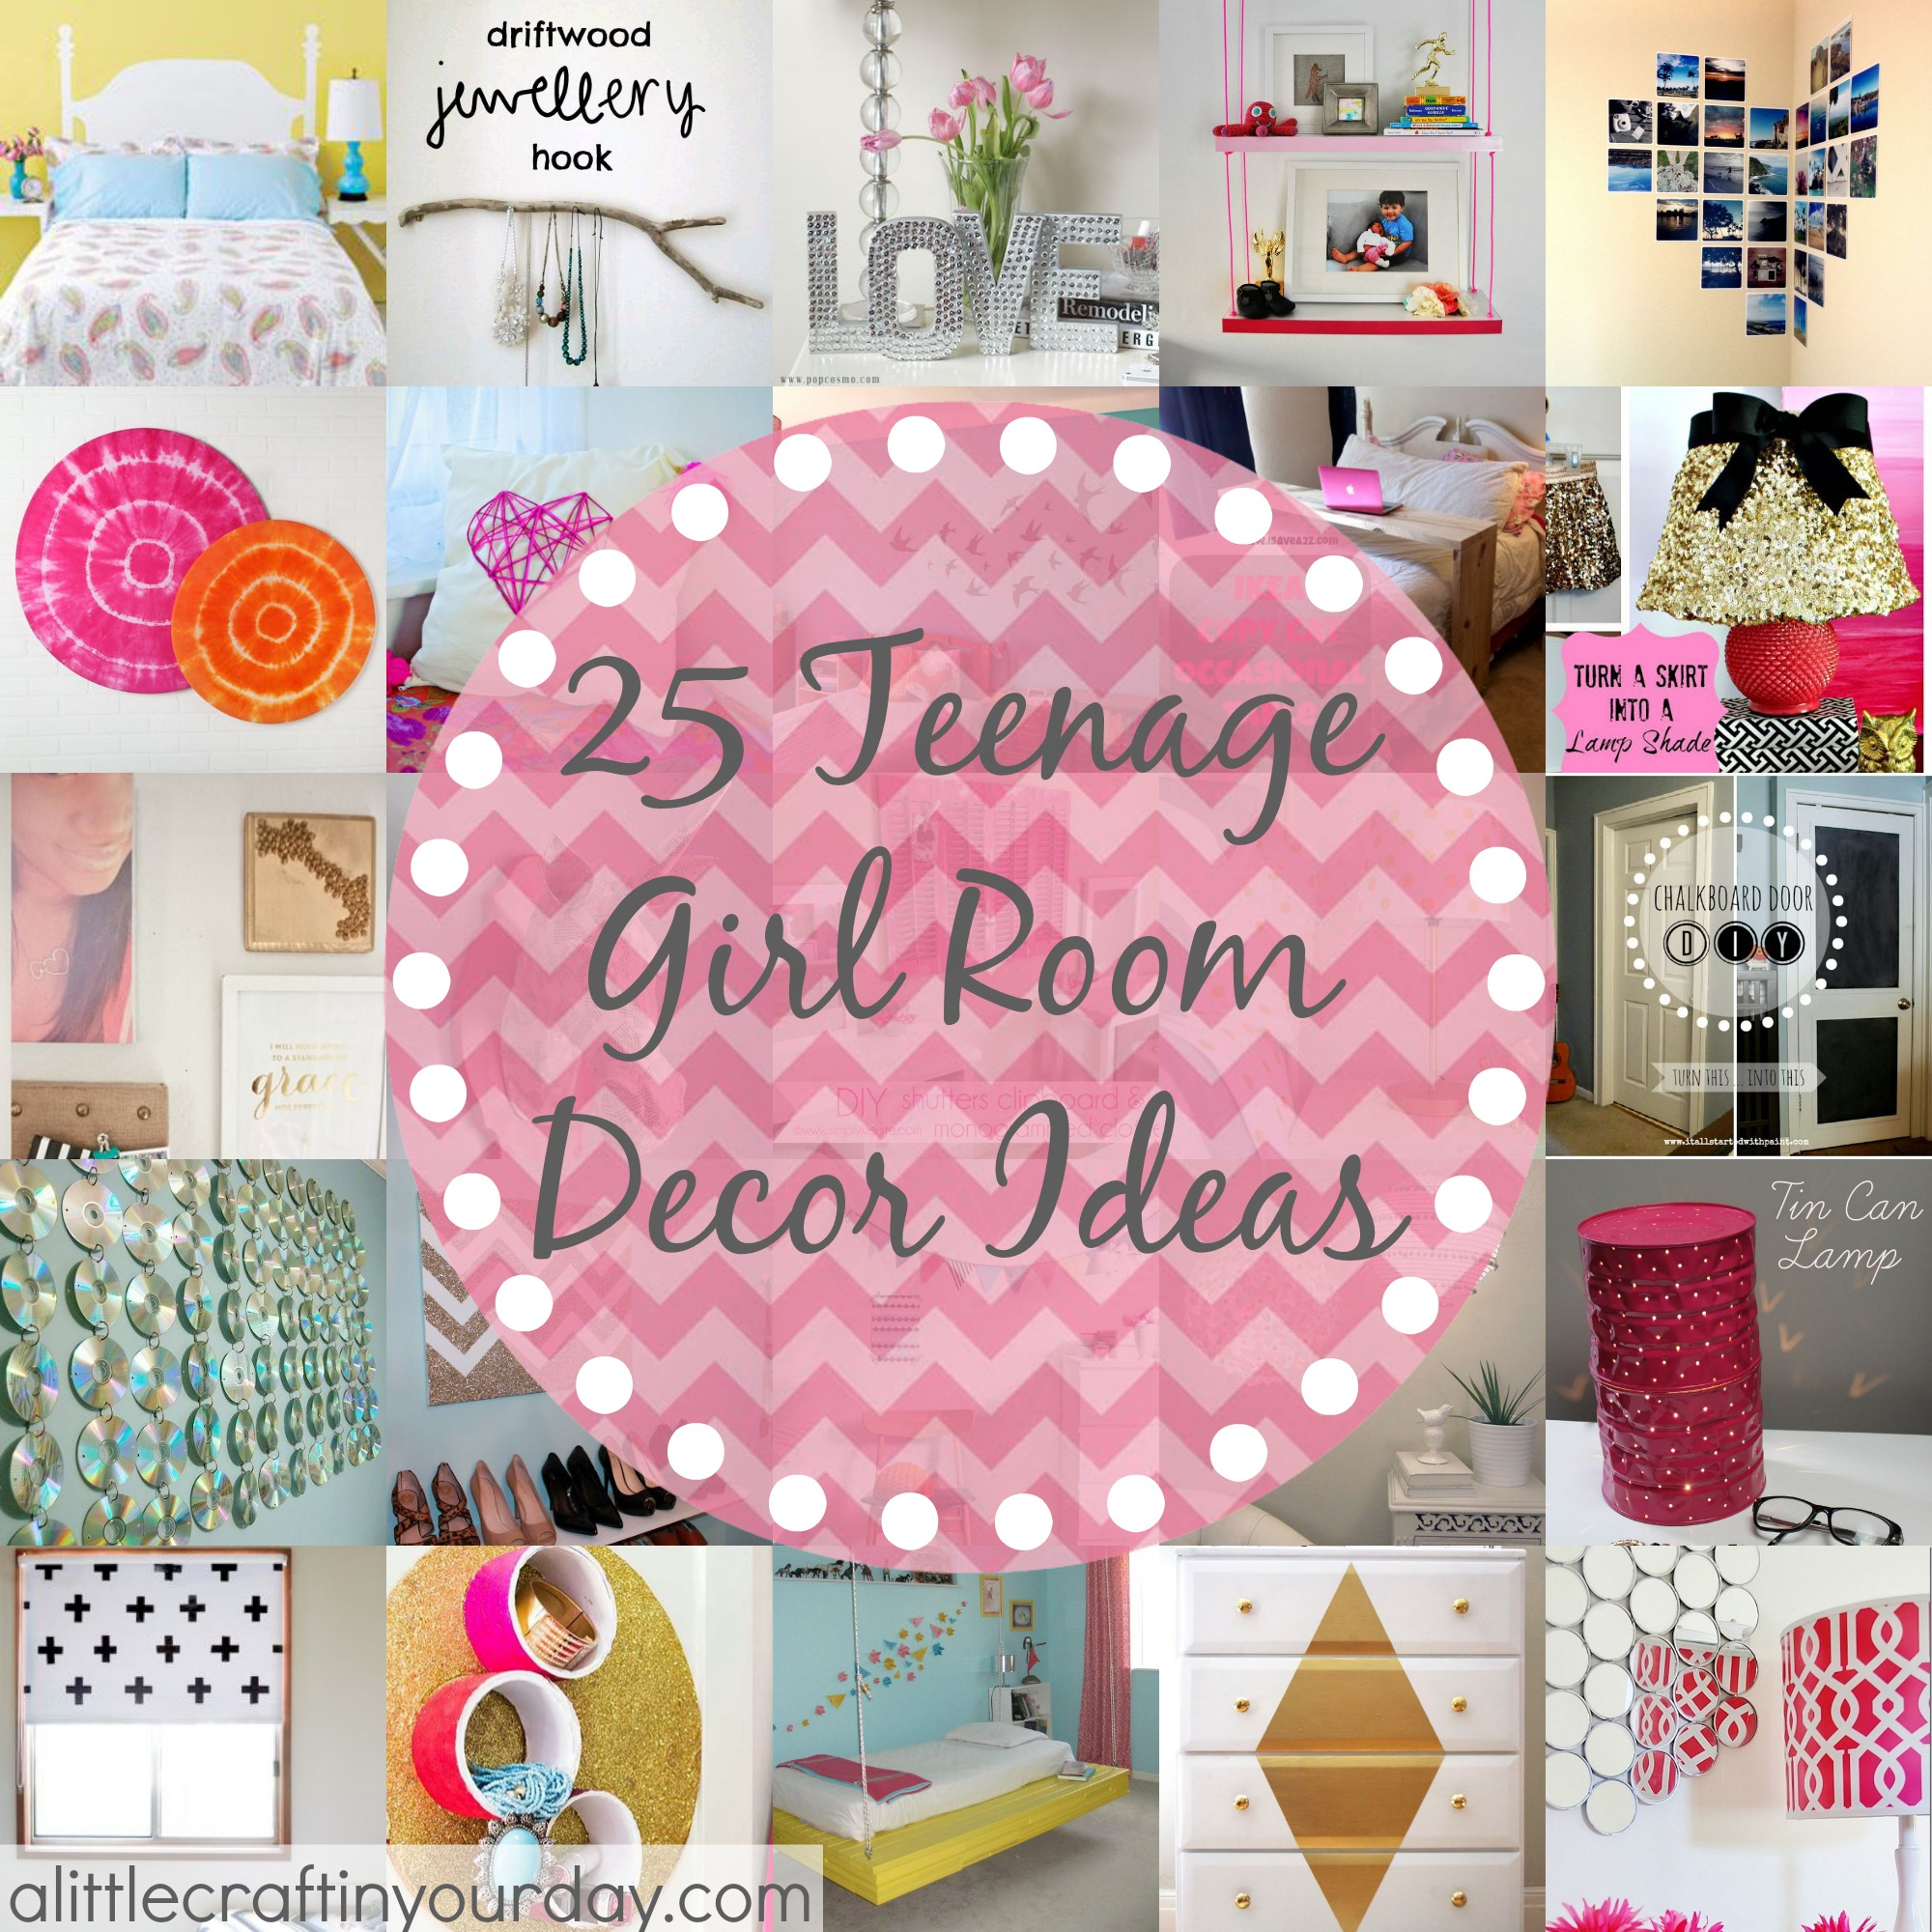 4/30 | 25 More Teenage Girl Room Decor Ideas